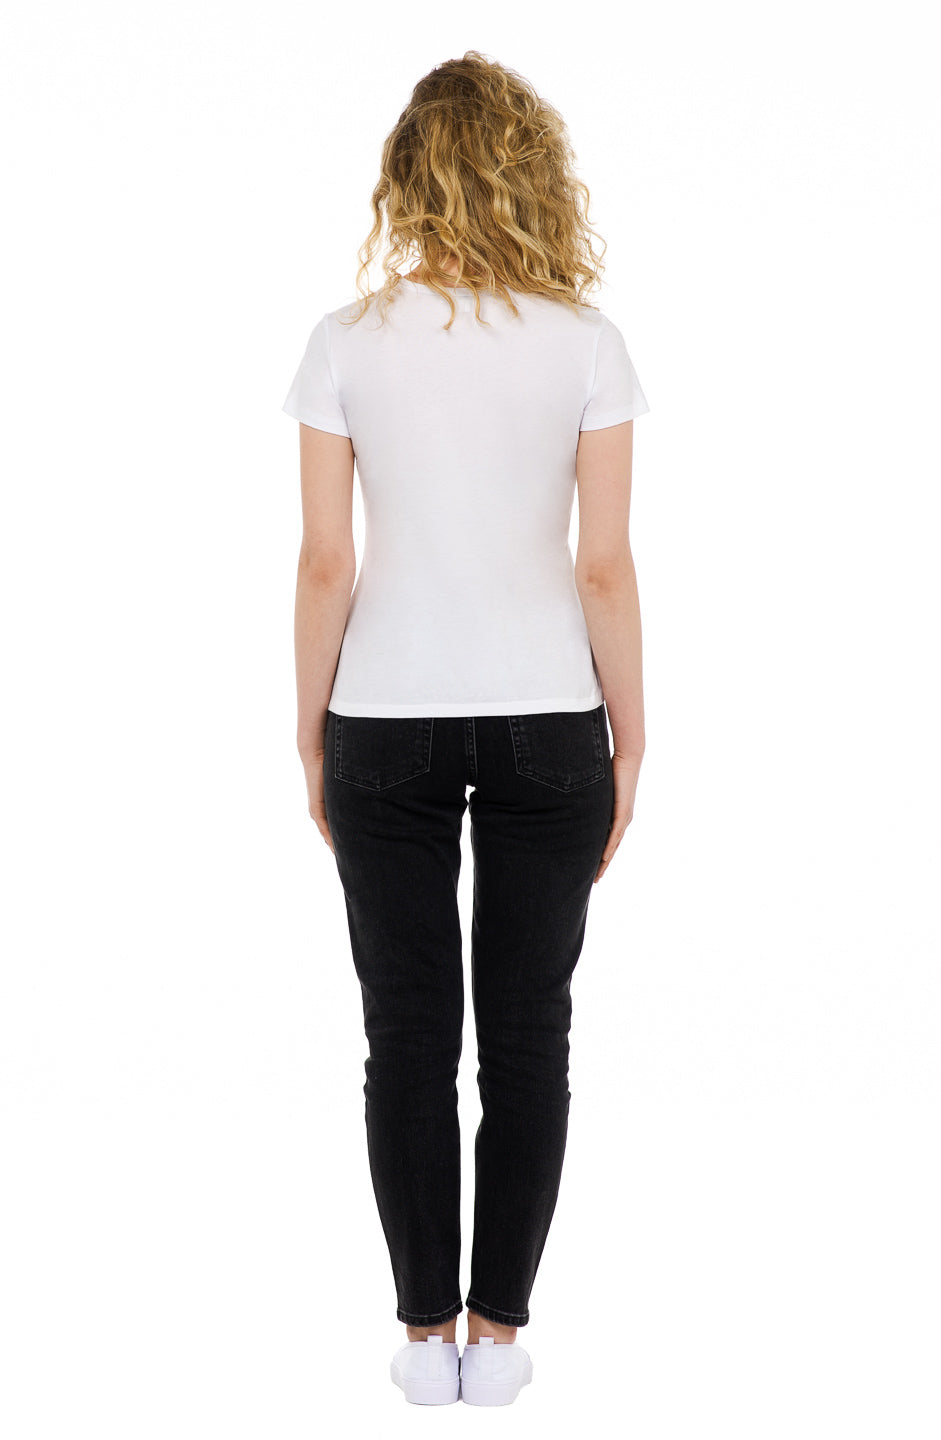 sustainable women's tee shirt organic cotton white